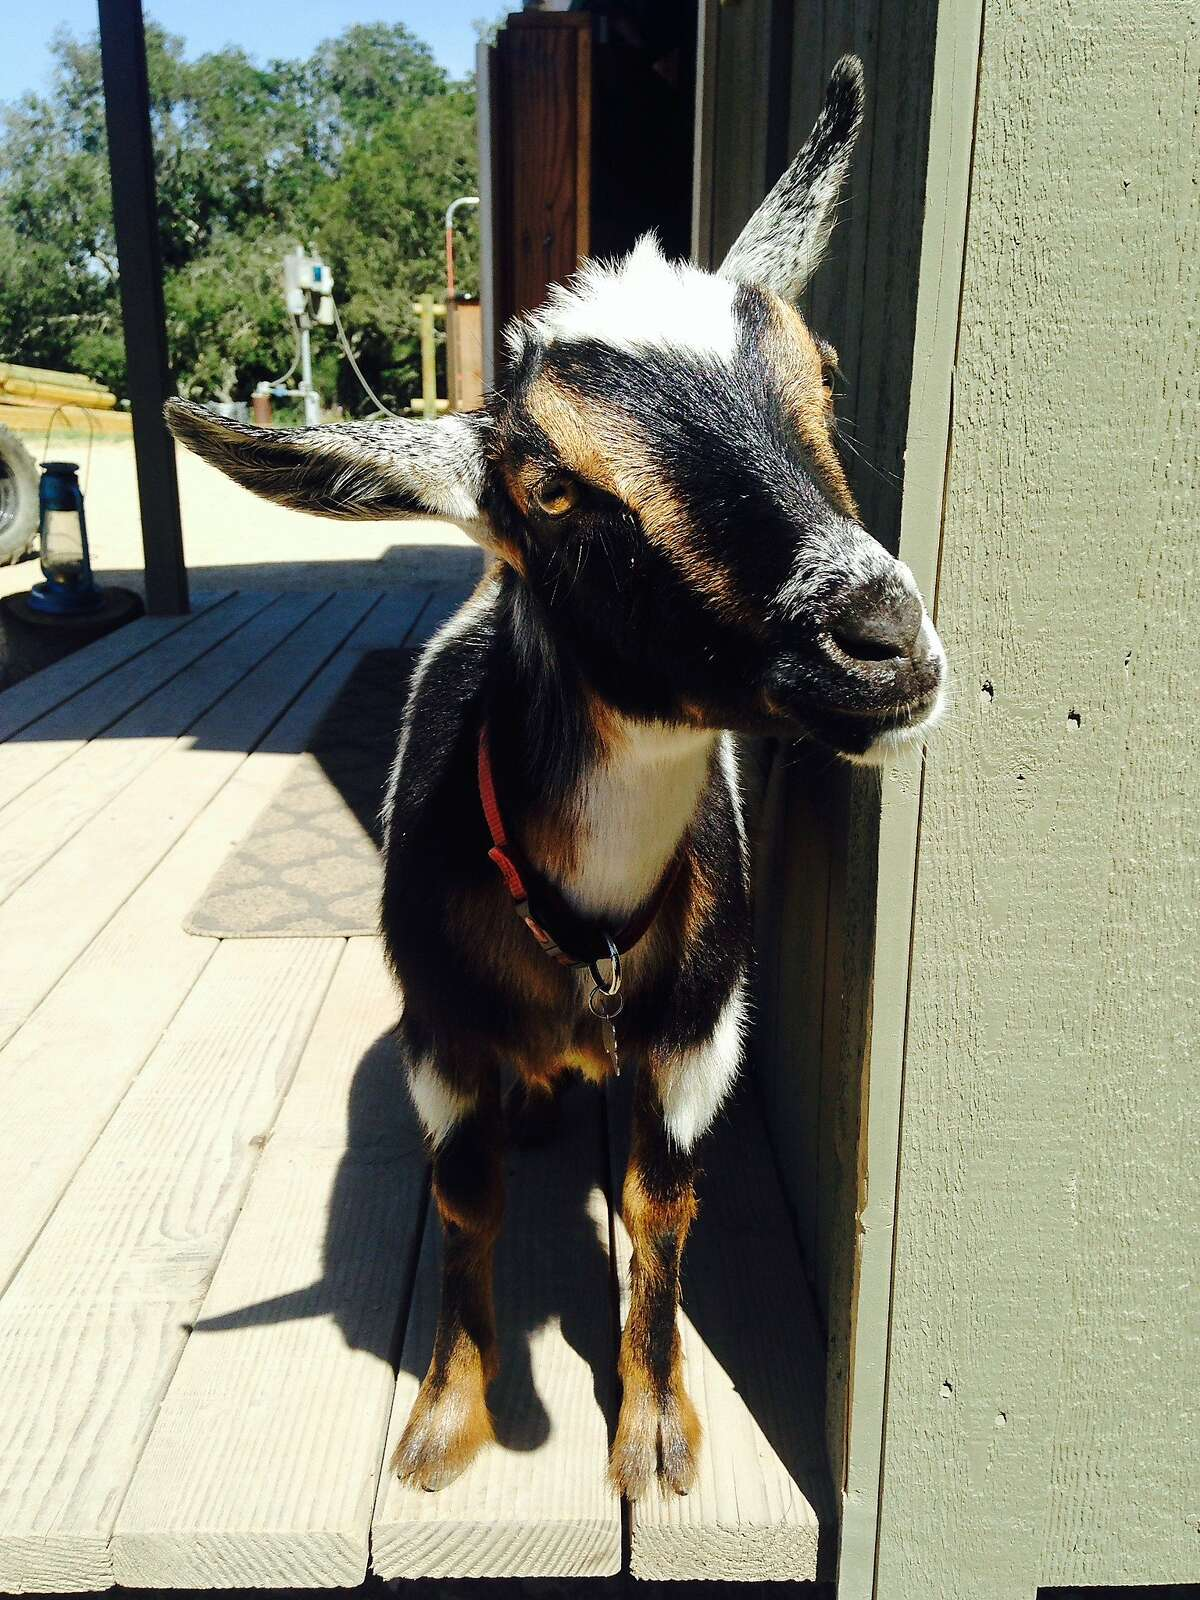 Otis the miniature goat, nicknamed Goatis, has become one of the star attractions at Carmel Valley Trail Rides.This holiday season, City Grazing is partnering with the San Francisco Fire Department and inviting residents to bring their clean, ornament-free Christmas trees to its location in Bayview to feed the 80 goats they keep on its grounds.